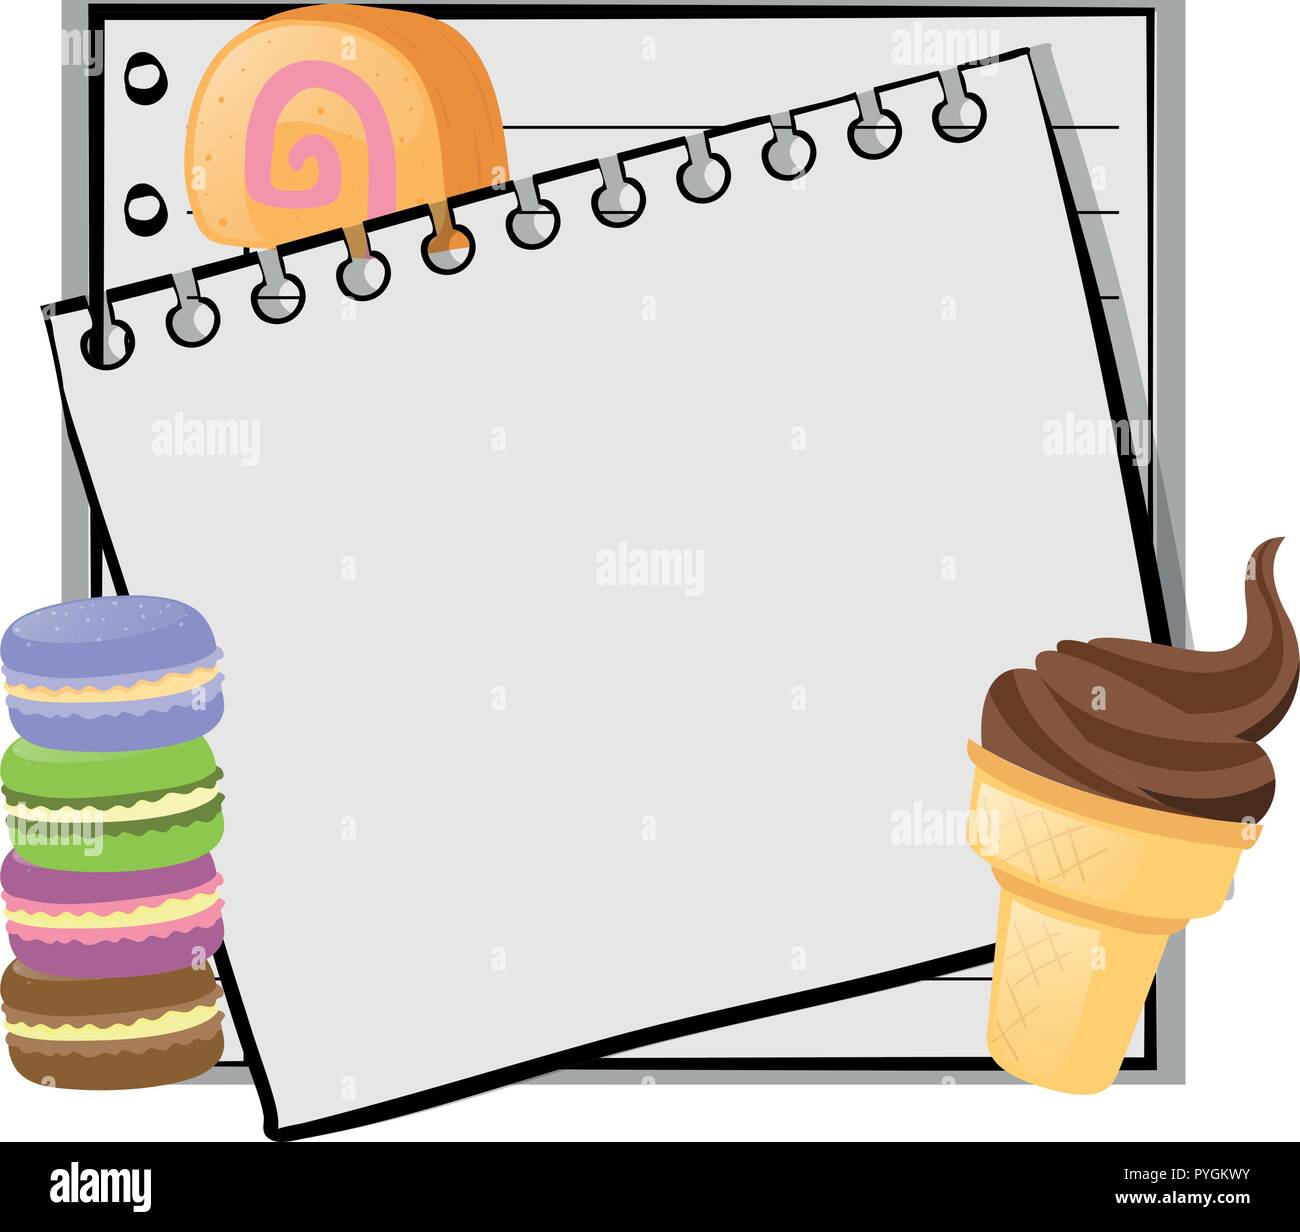 paper template with icecream and macarons illustration stock vector